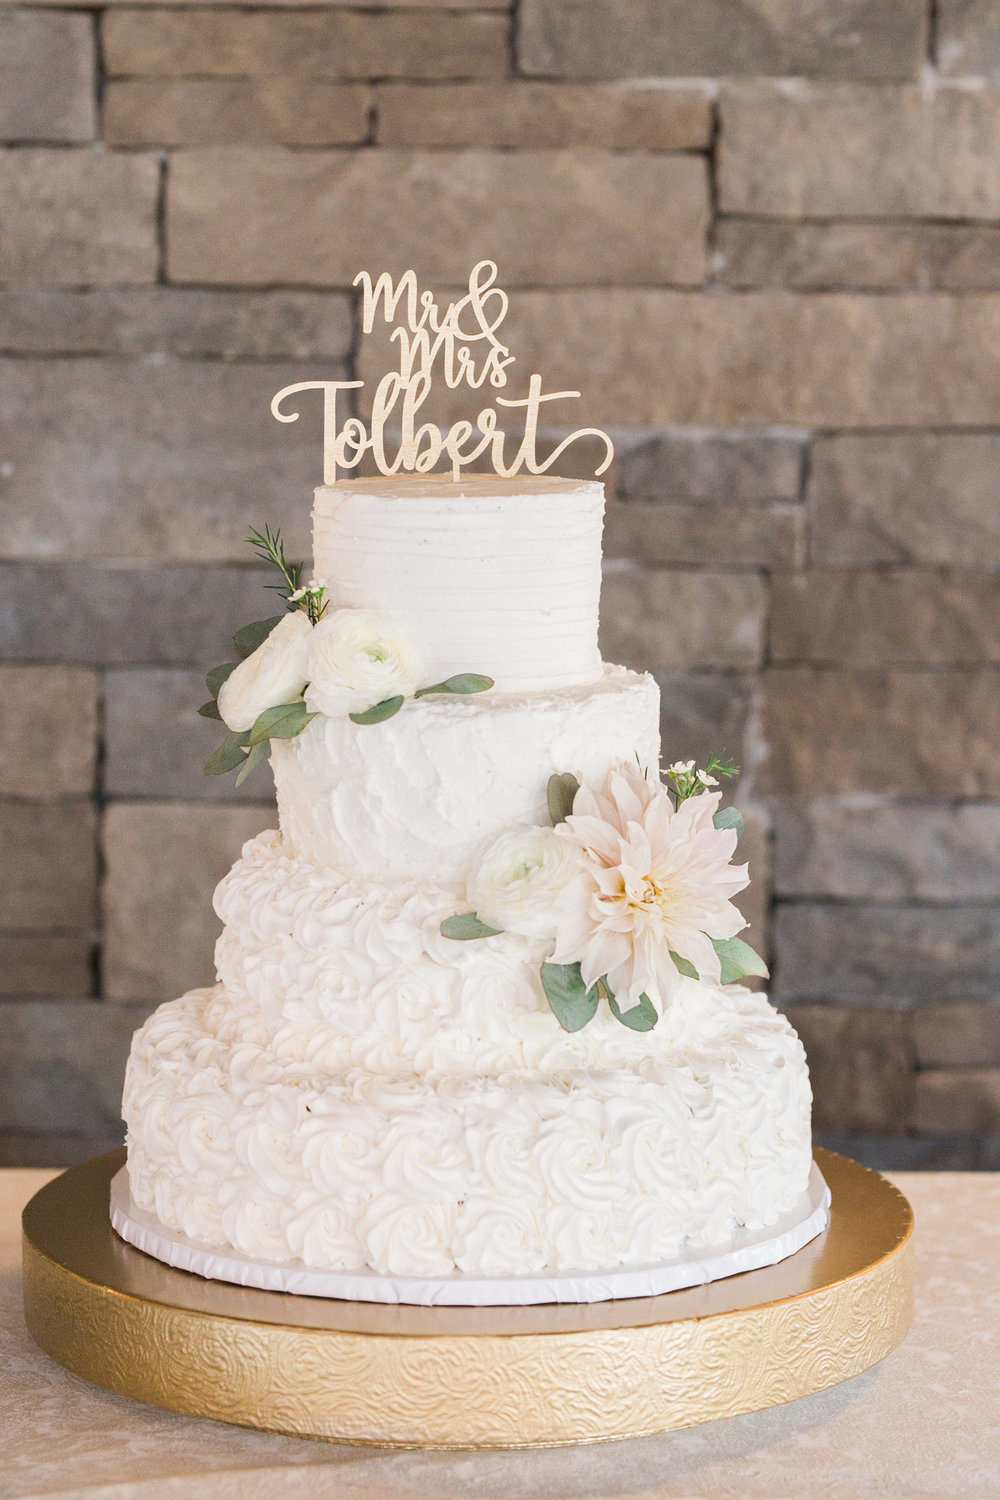 Cake by Make it Cake. pc: Mandee Matthews Photography. August Wedding at Pepper Sprout Barn.